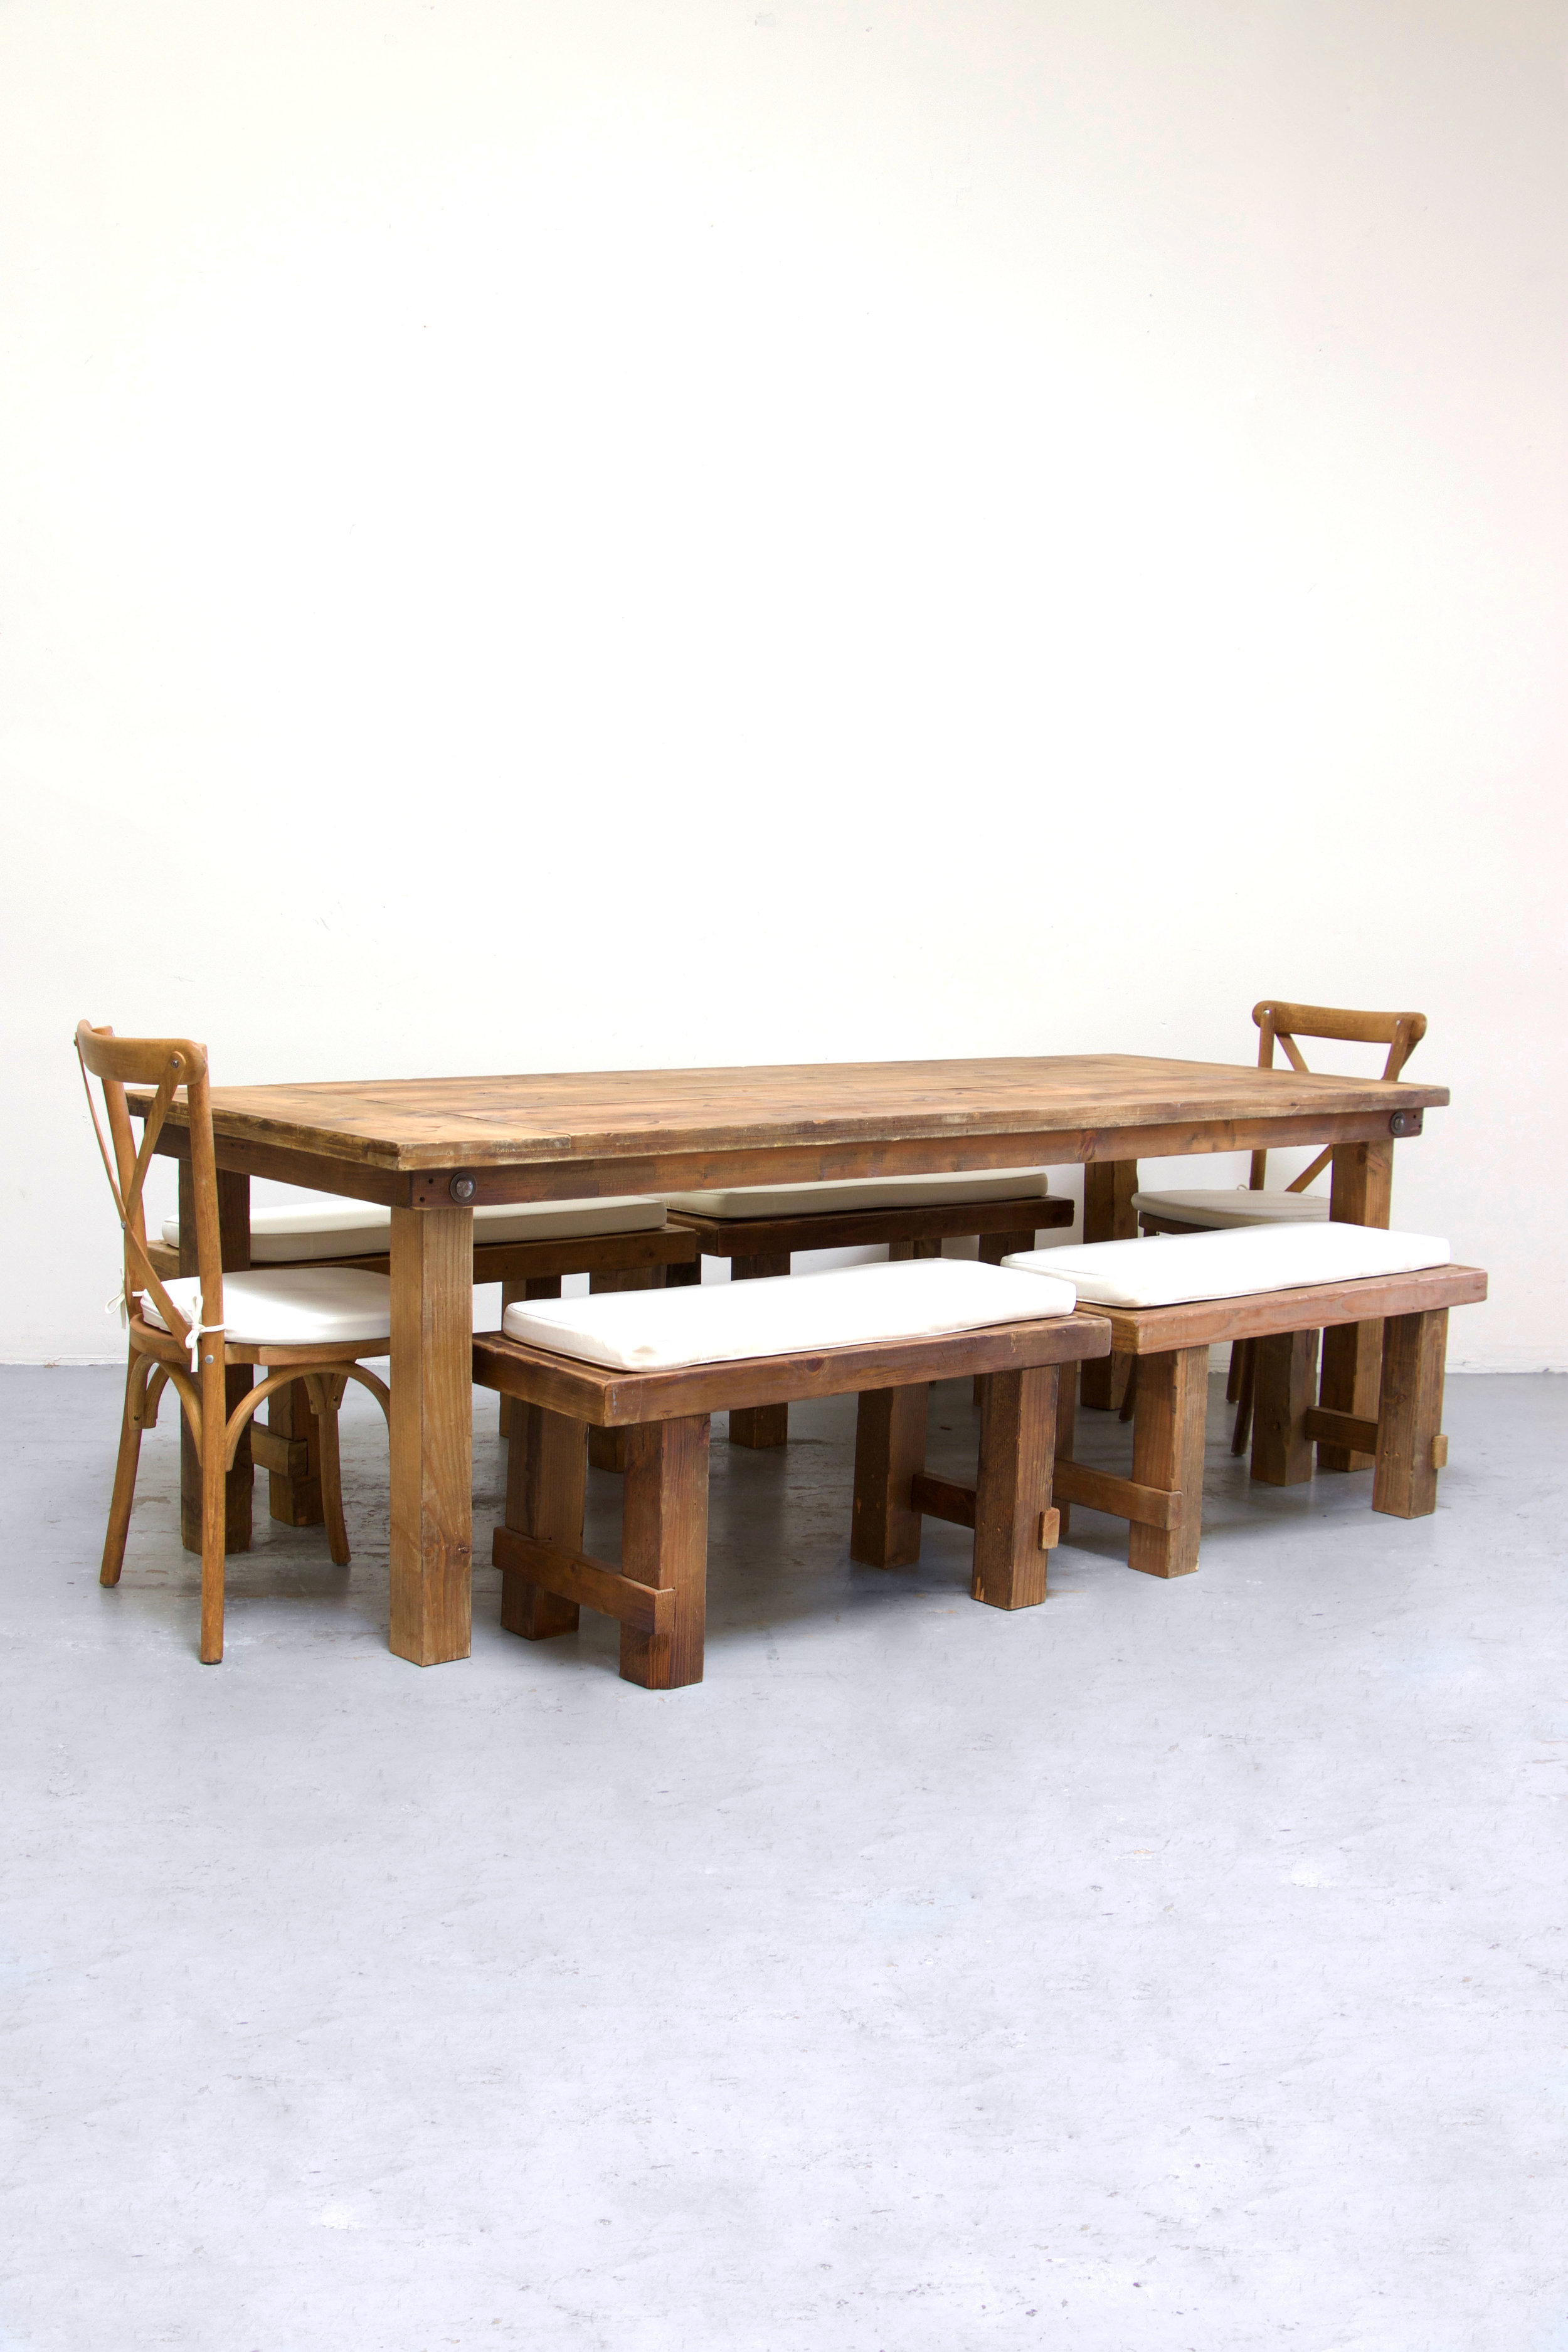 $160 Honey Brown Farm Table w/ 4 Short Benches & 2 Cross-Back Chairs